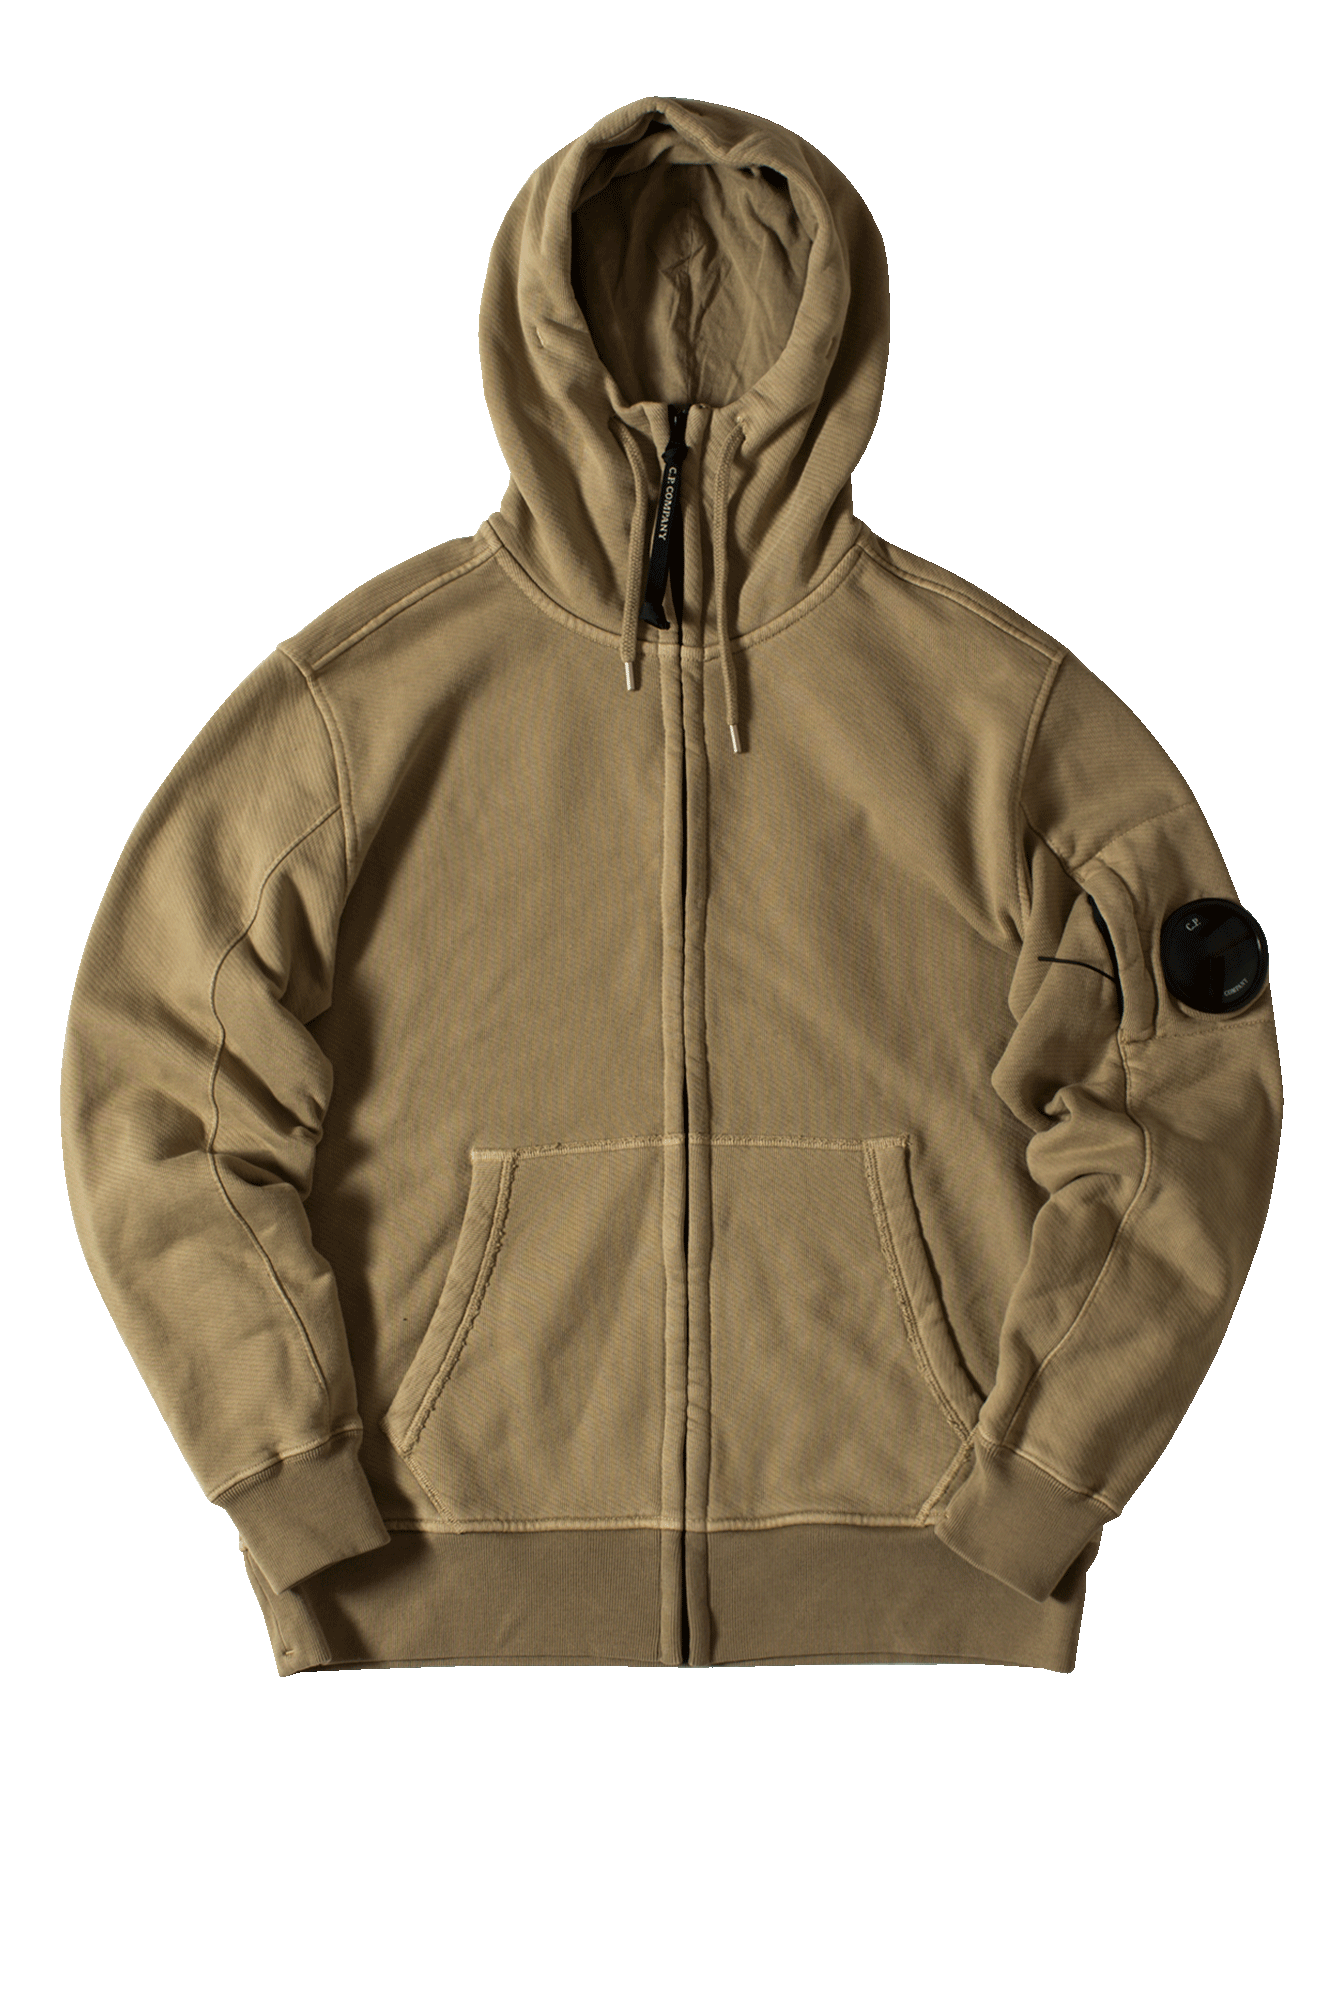 Hooded Open Zip-up sweatshirt Beige